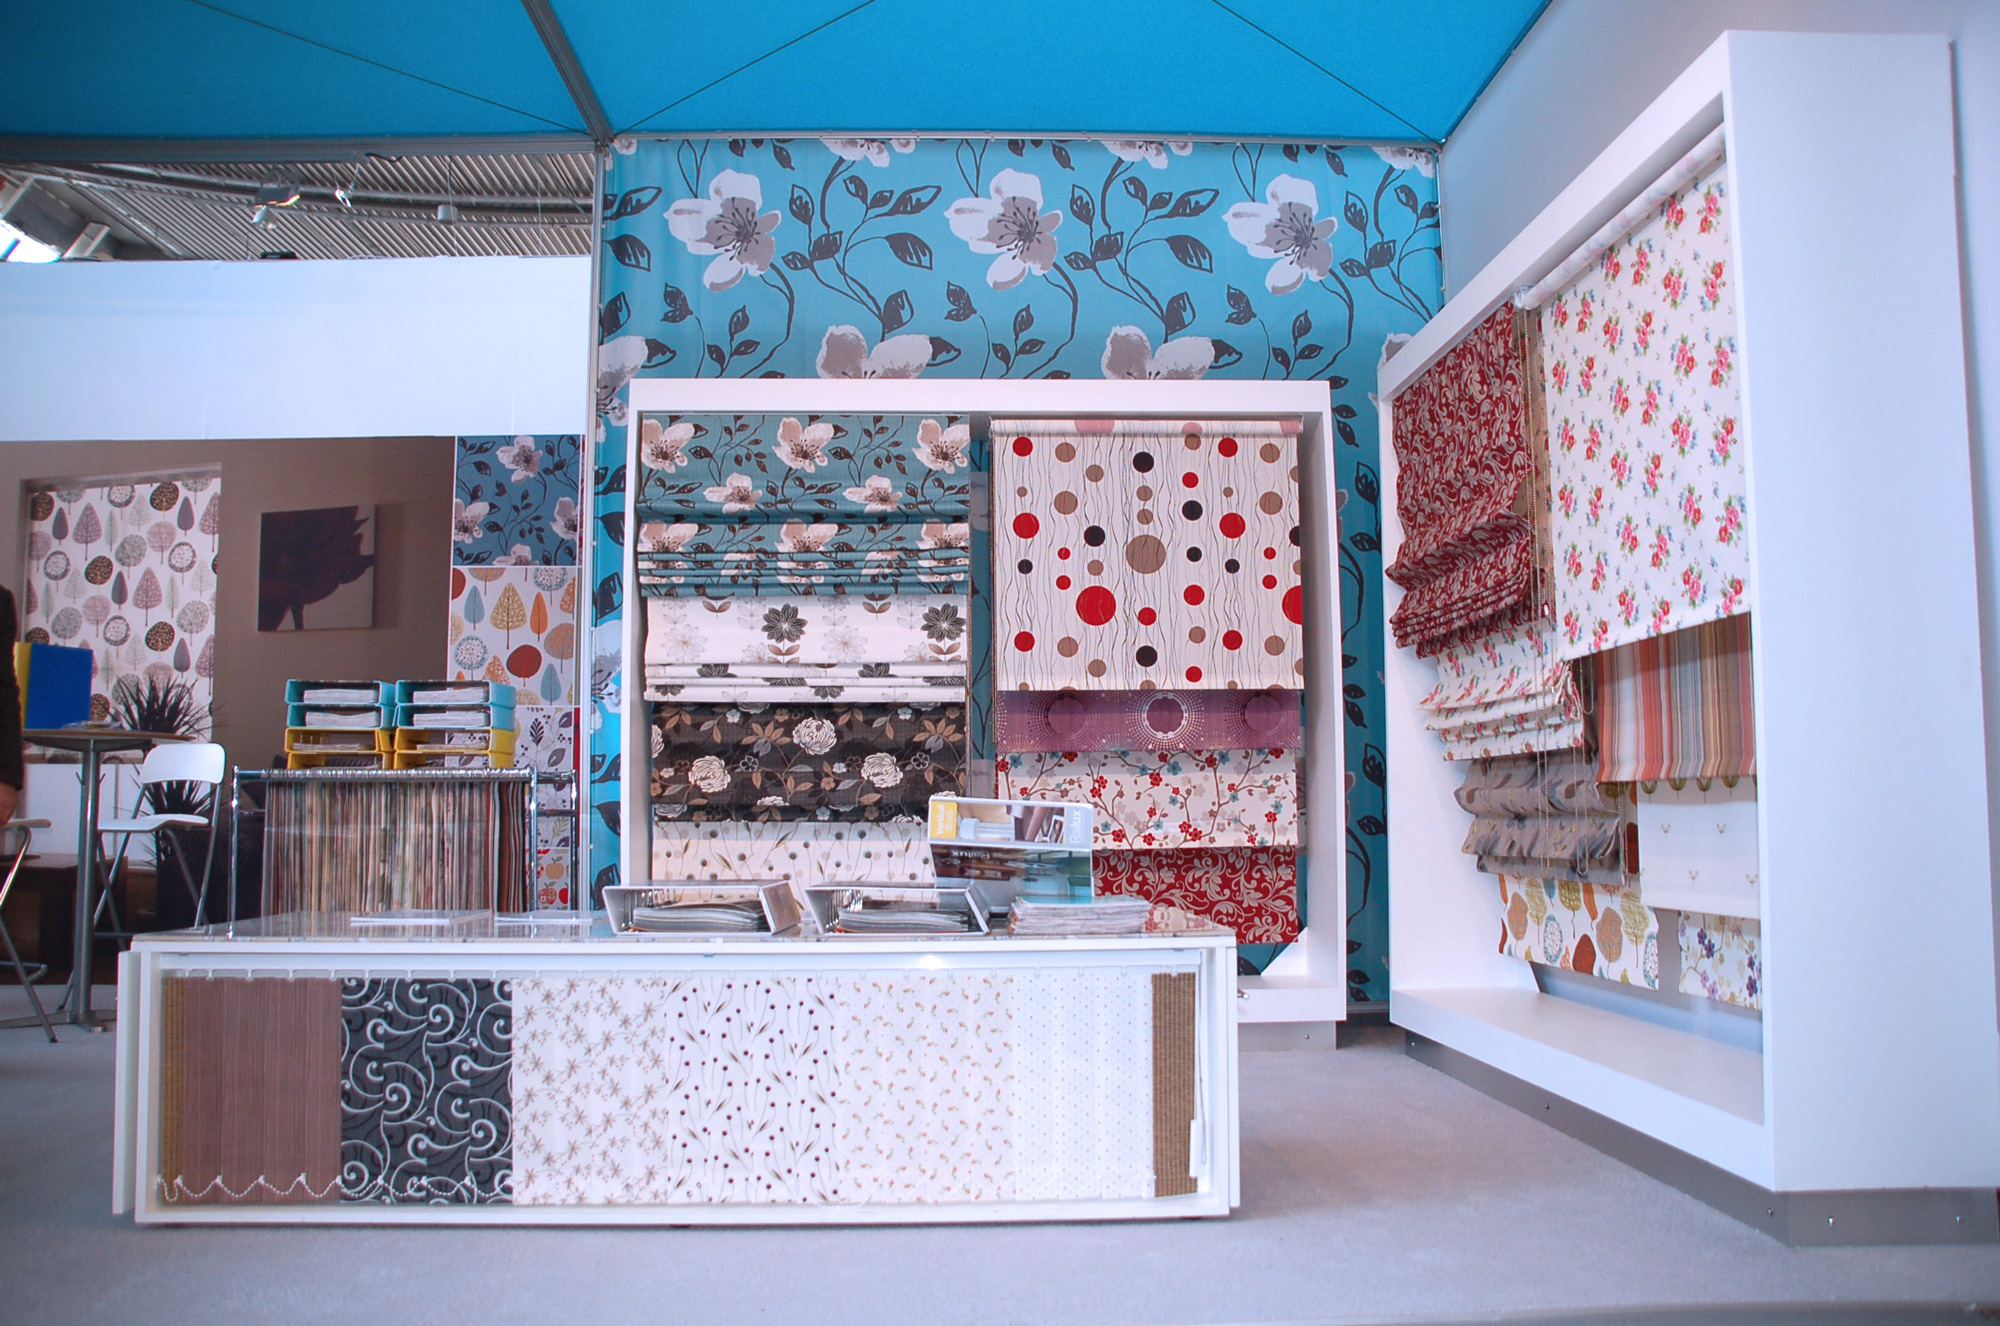 Exhibition Display of Roller Blinds